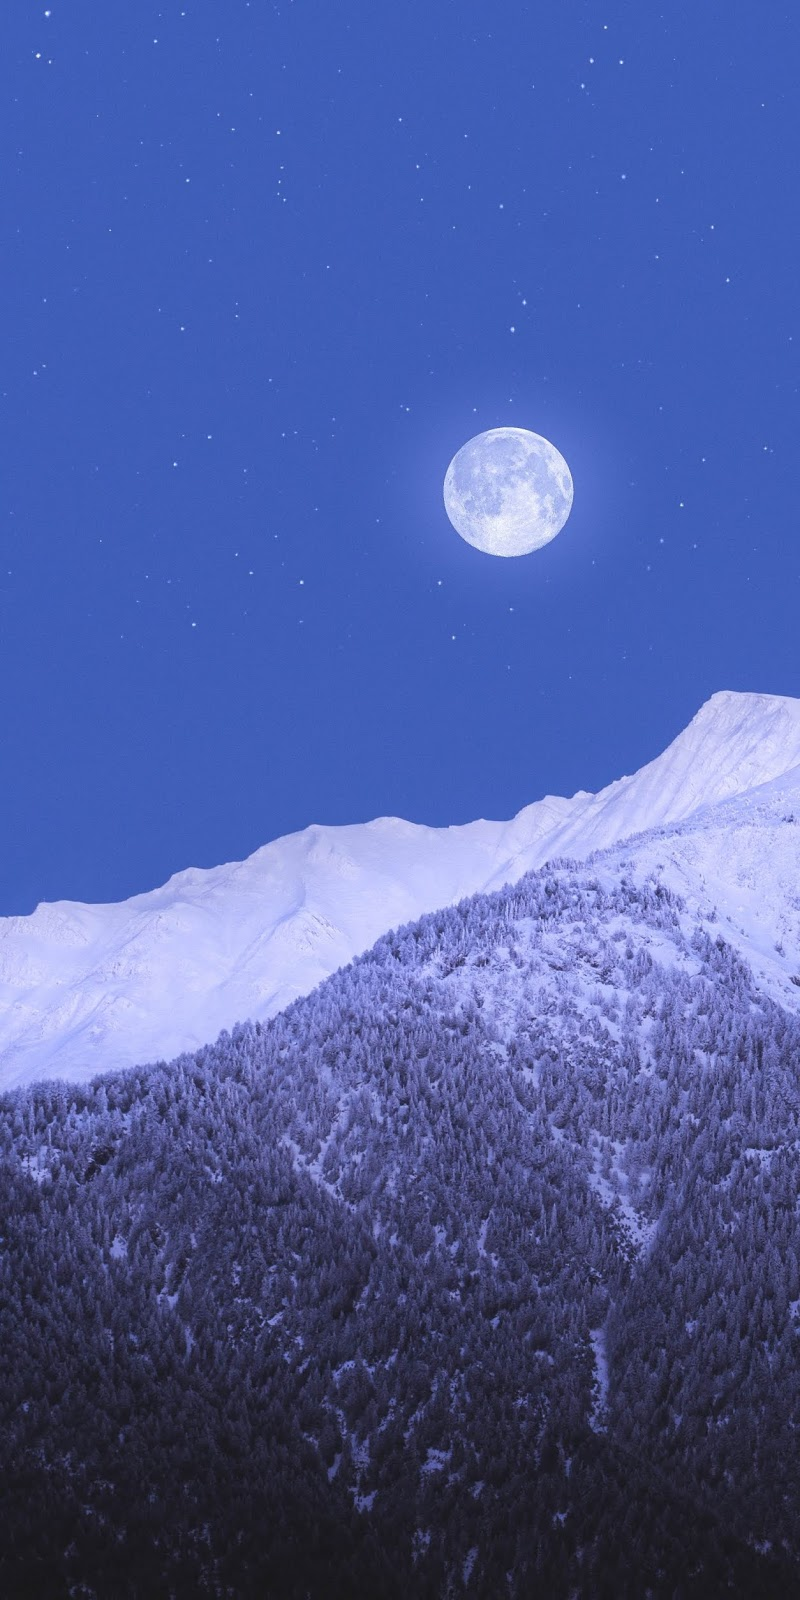 Full moon in the snowy mountain